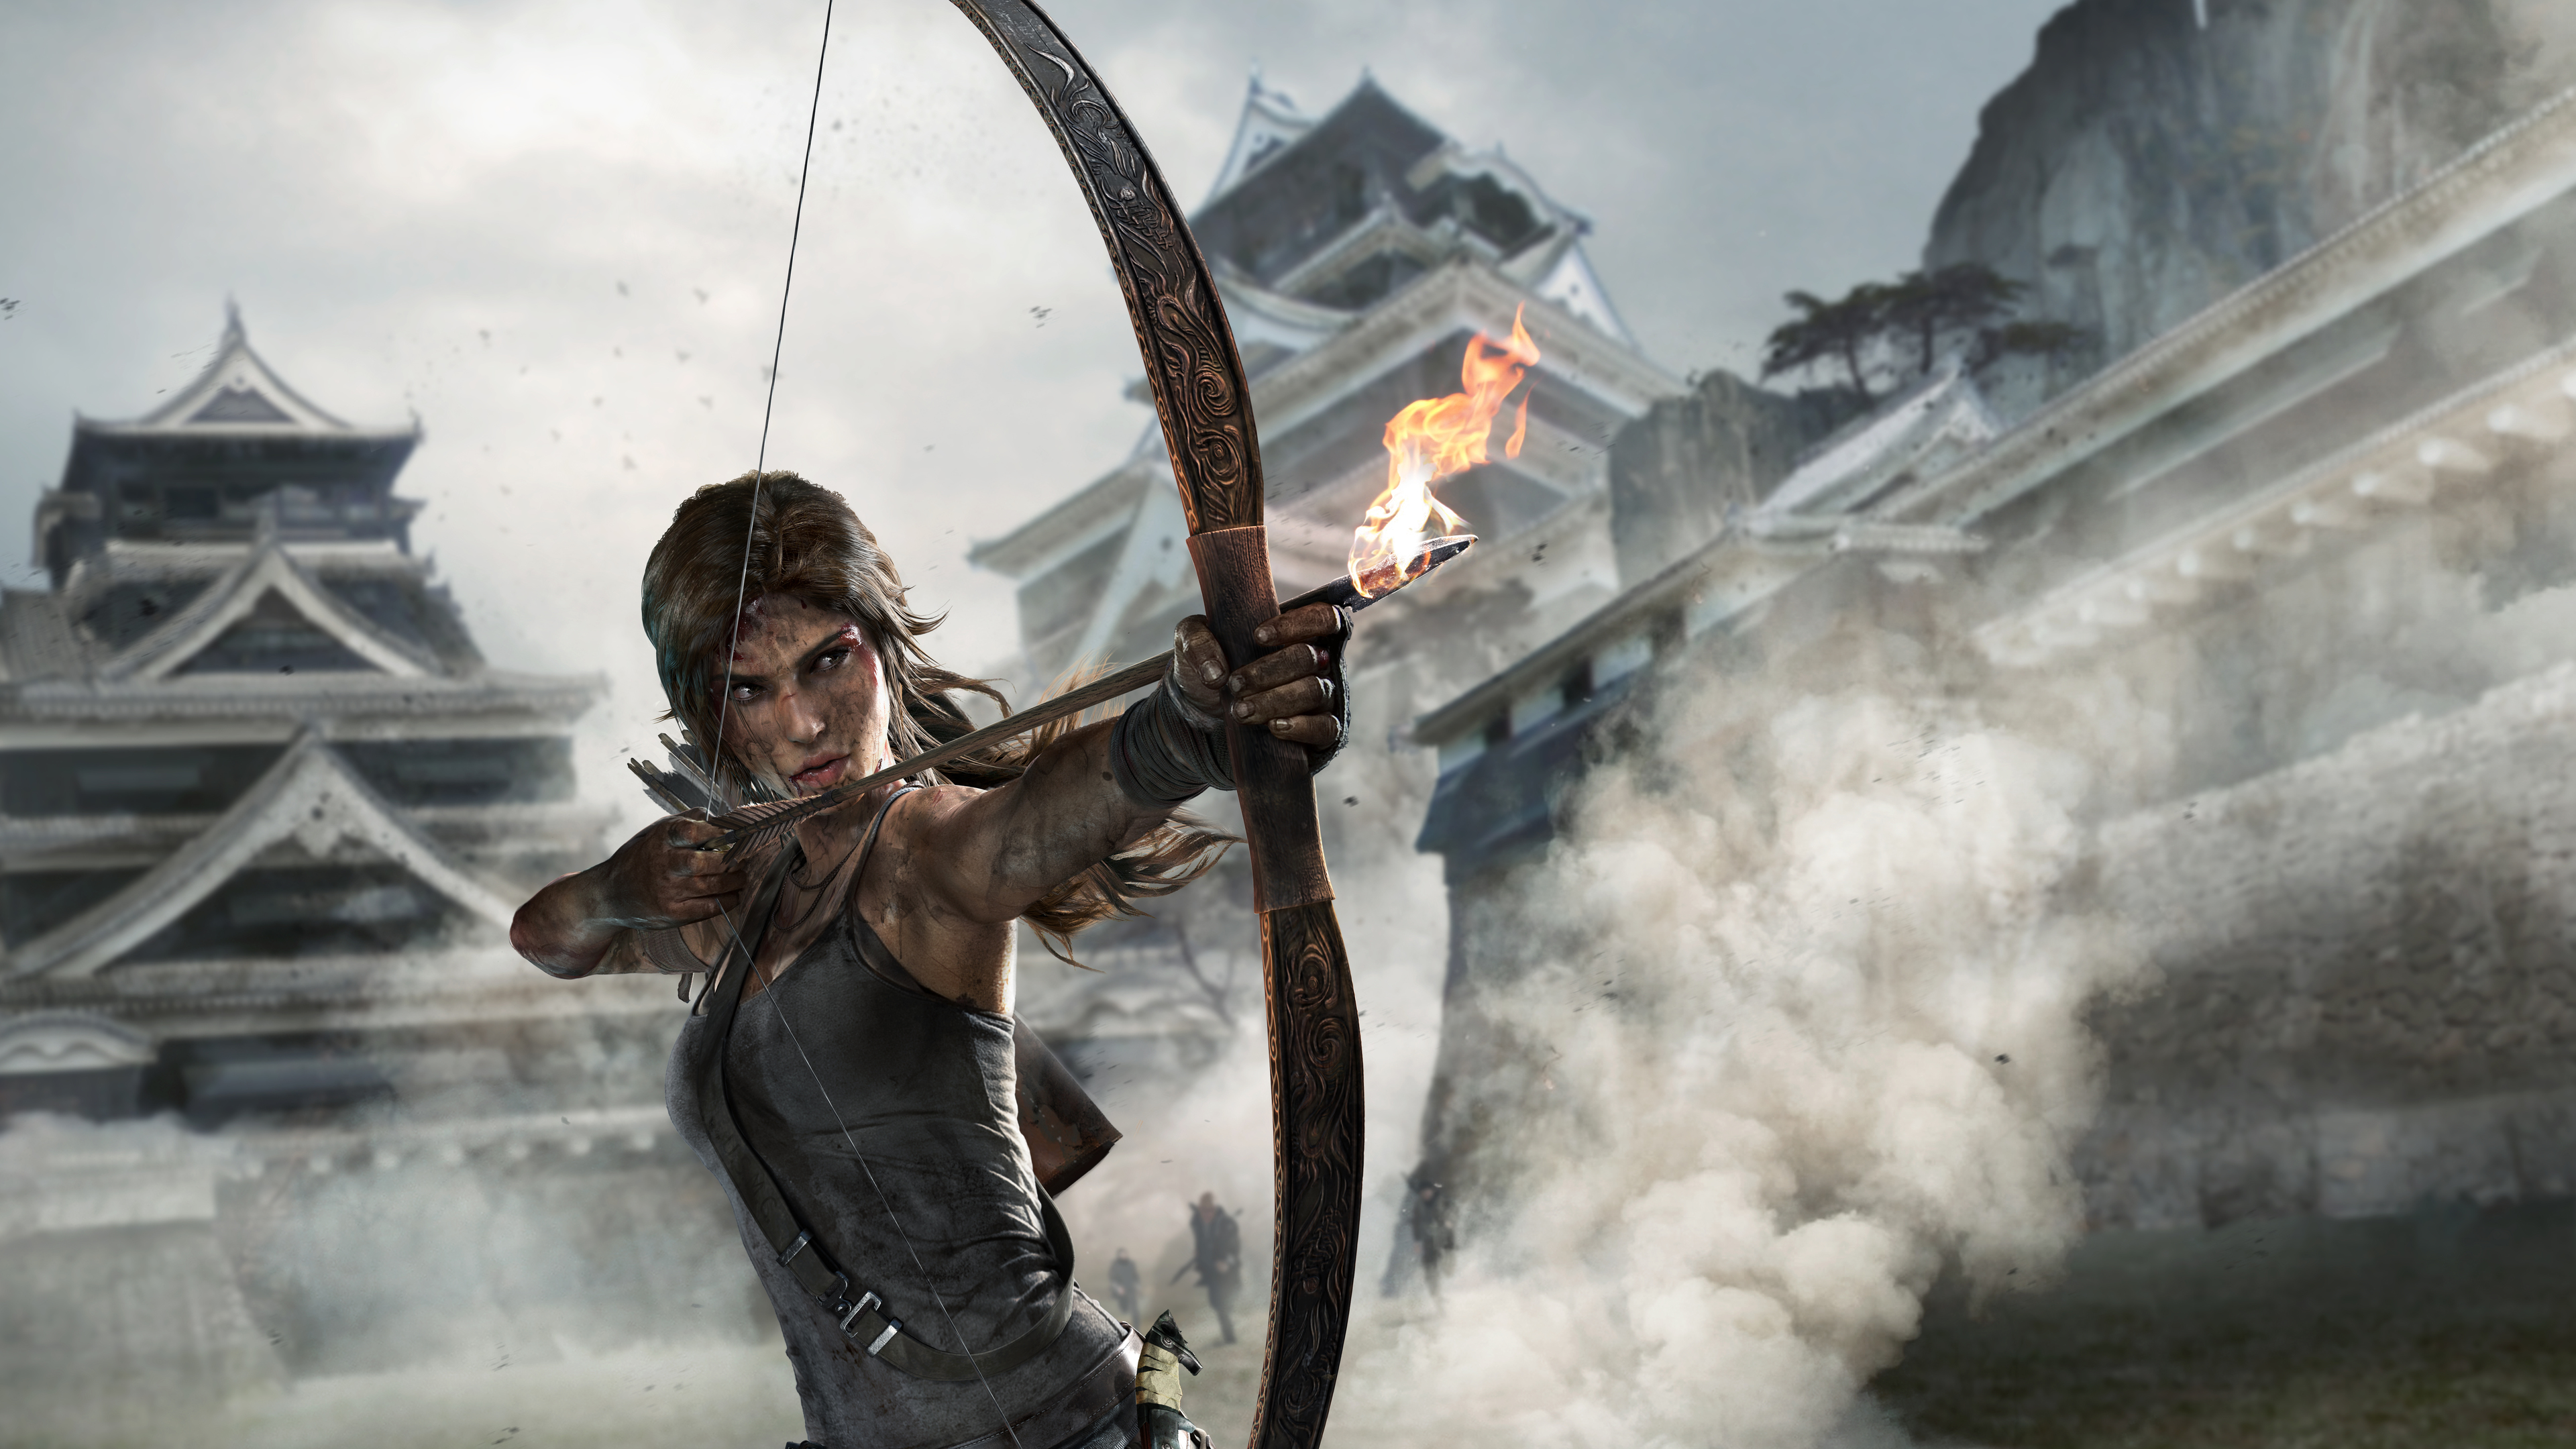 tomb raider definitive edition 1568056902 - Tomb Raider Definitive Edition - tomb raider wallpapers, lara croft wallpapers, hd-wallpapers, games wallpapers, 8k wallpapers, 5k wallpapers, 4k-wallpapers, 10k wallpapers